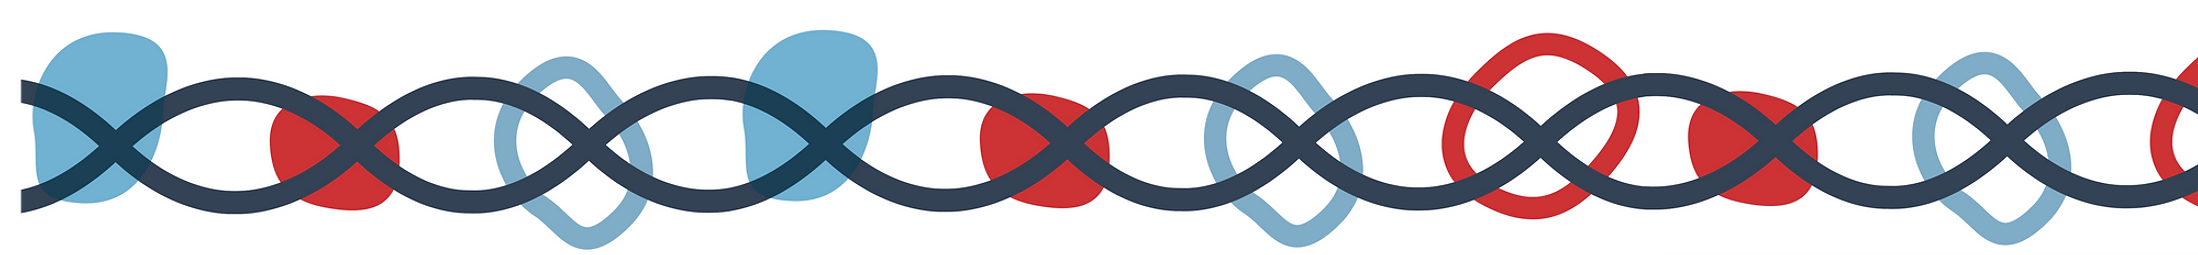 CYSS_DNA_LONG.png